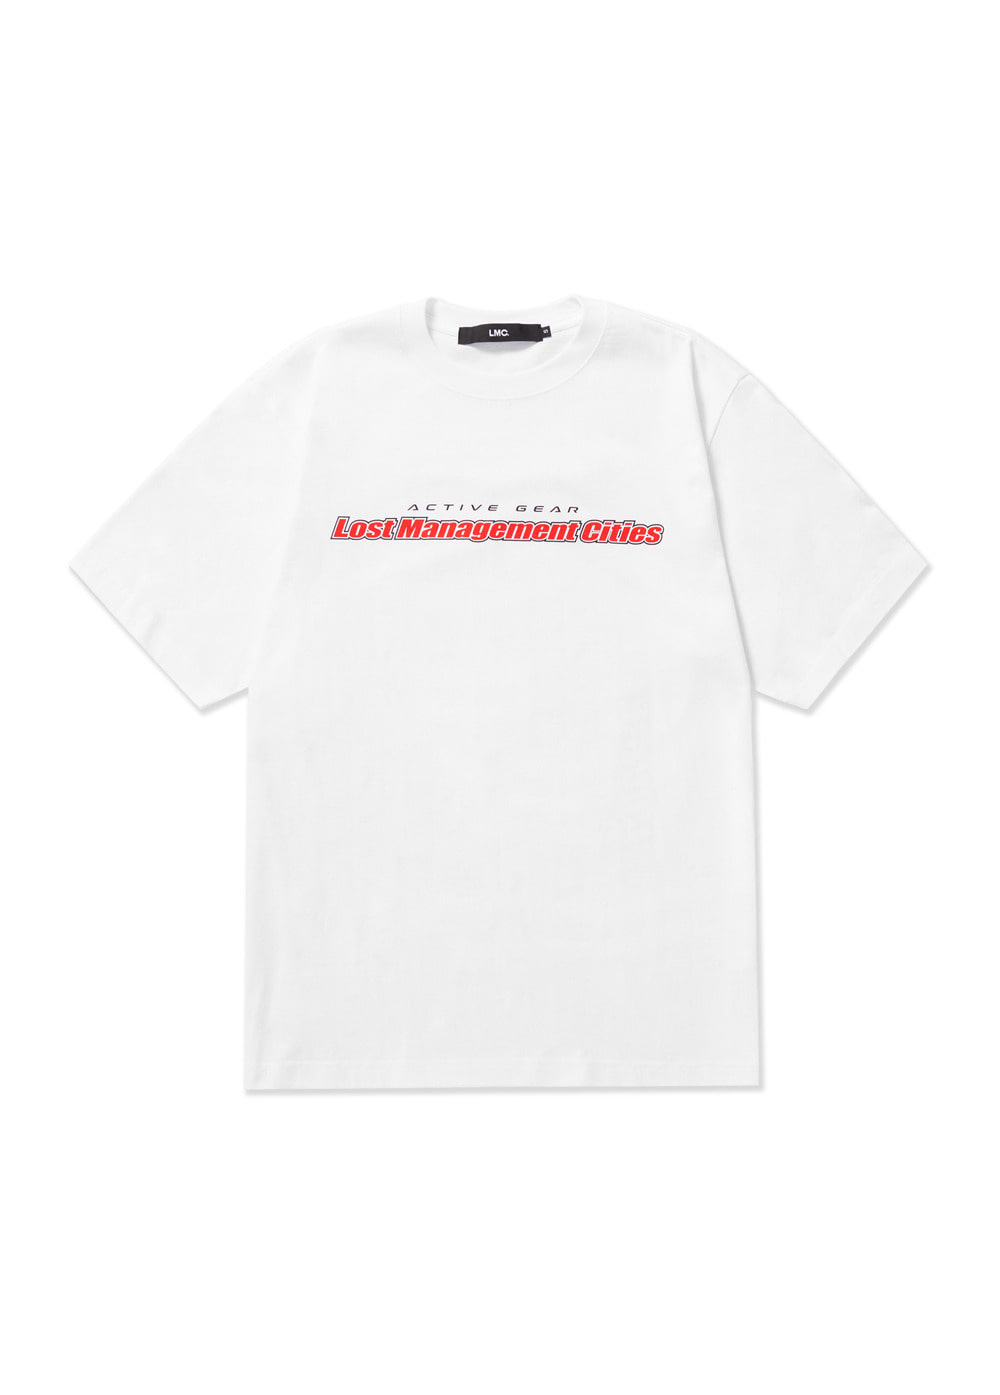 LMC 5th ANNIV RETRO VERTICAL GRADIENT TEE white